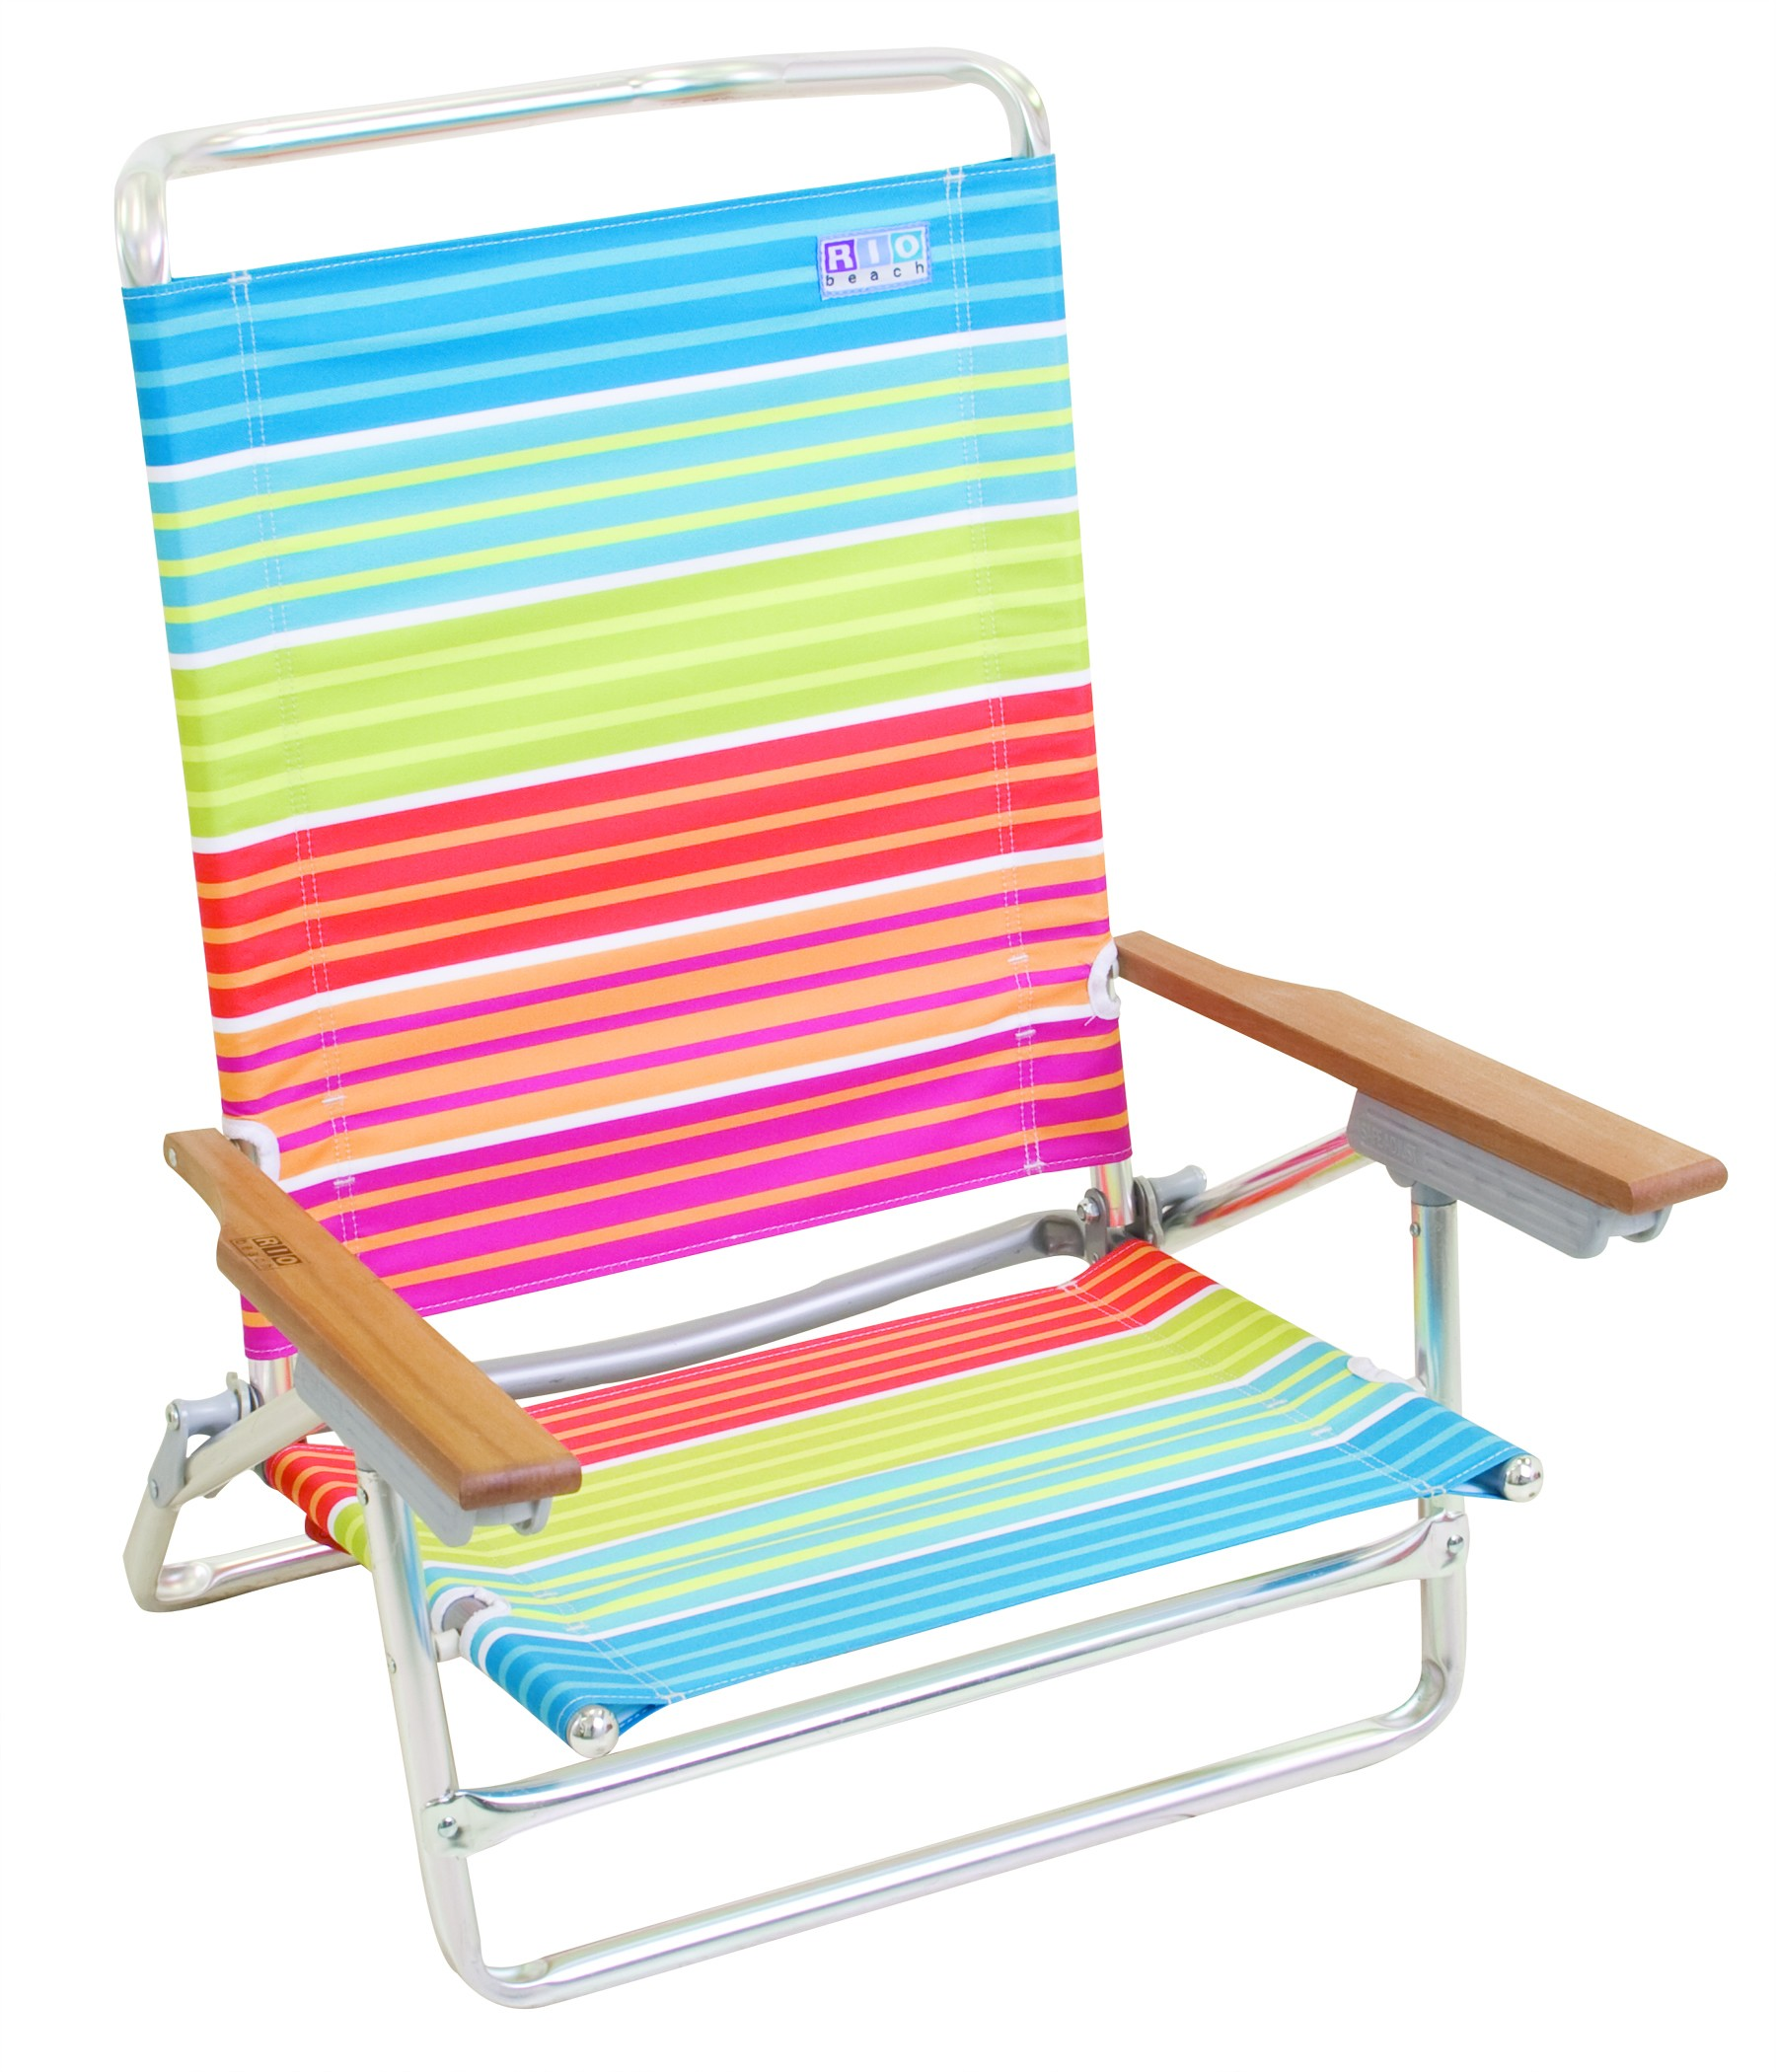 Five Position High Back Beach Chair - Sunset Striped